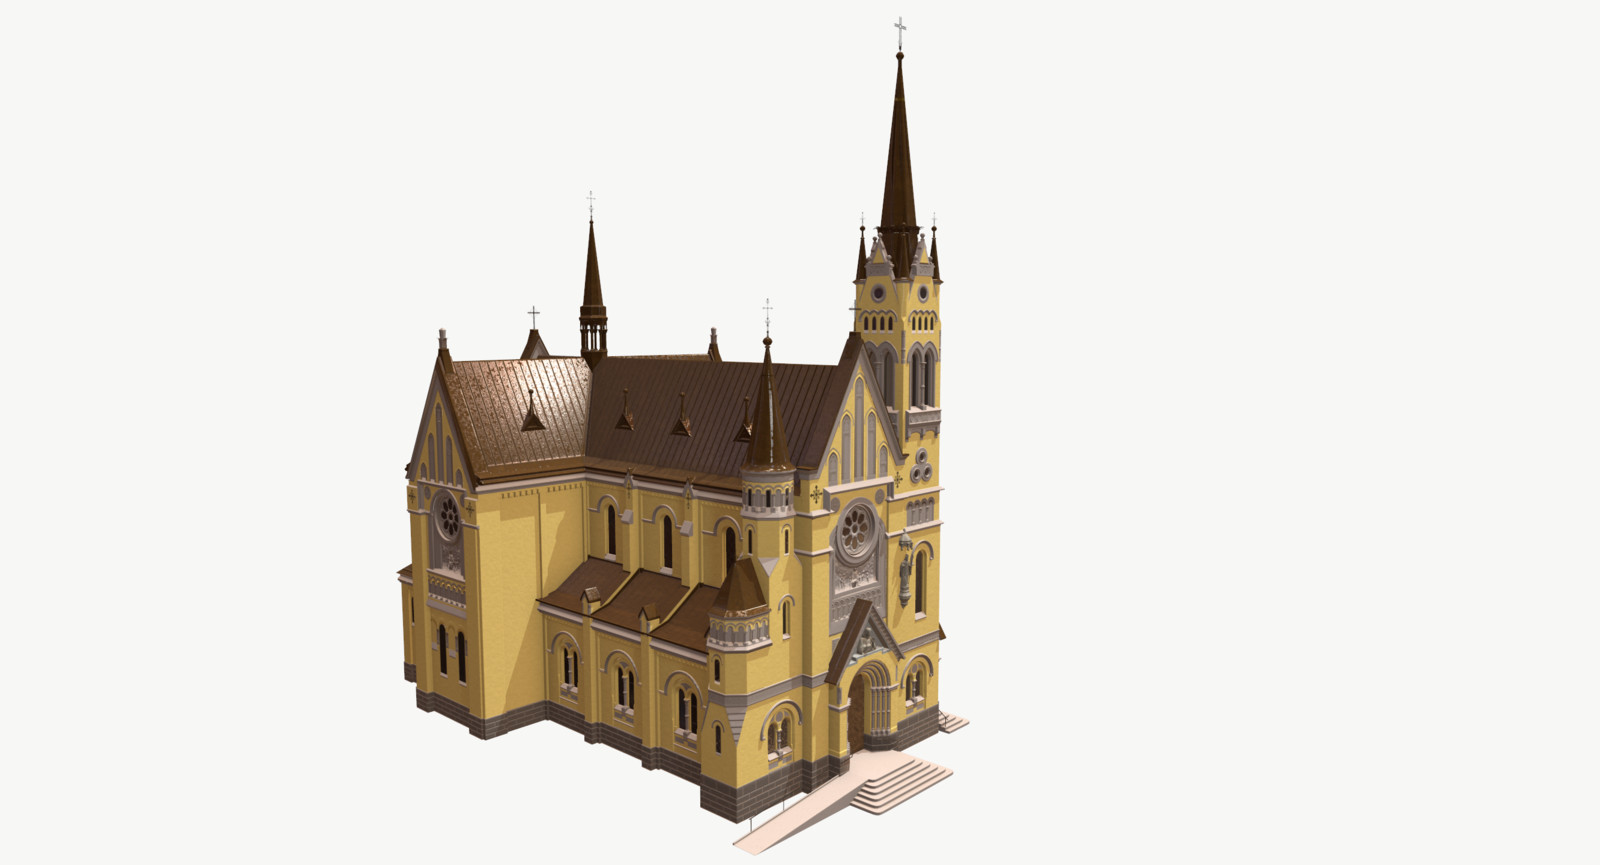 Lowpoly version